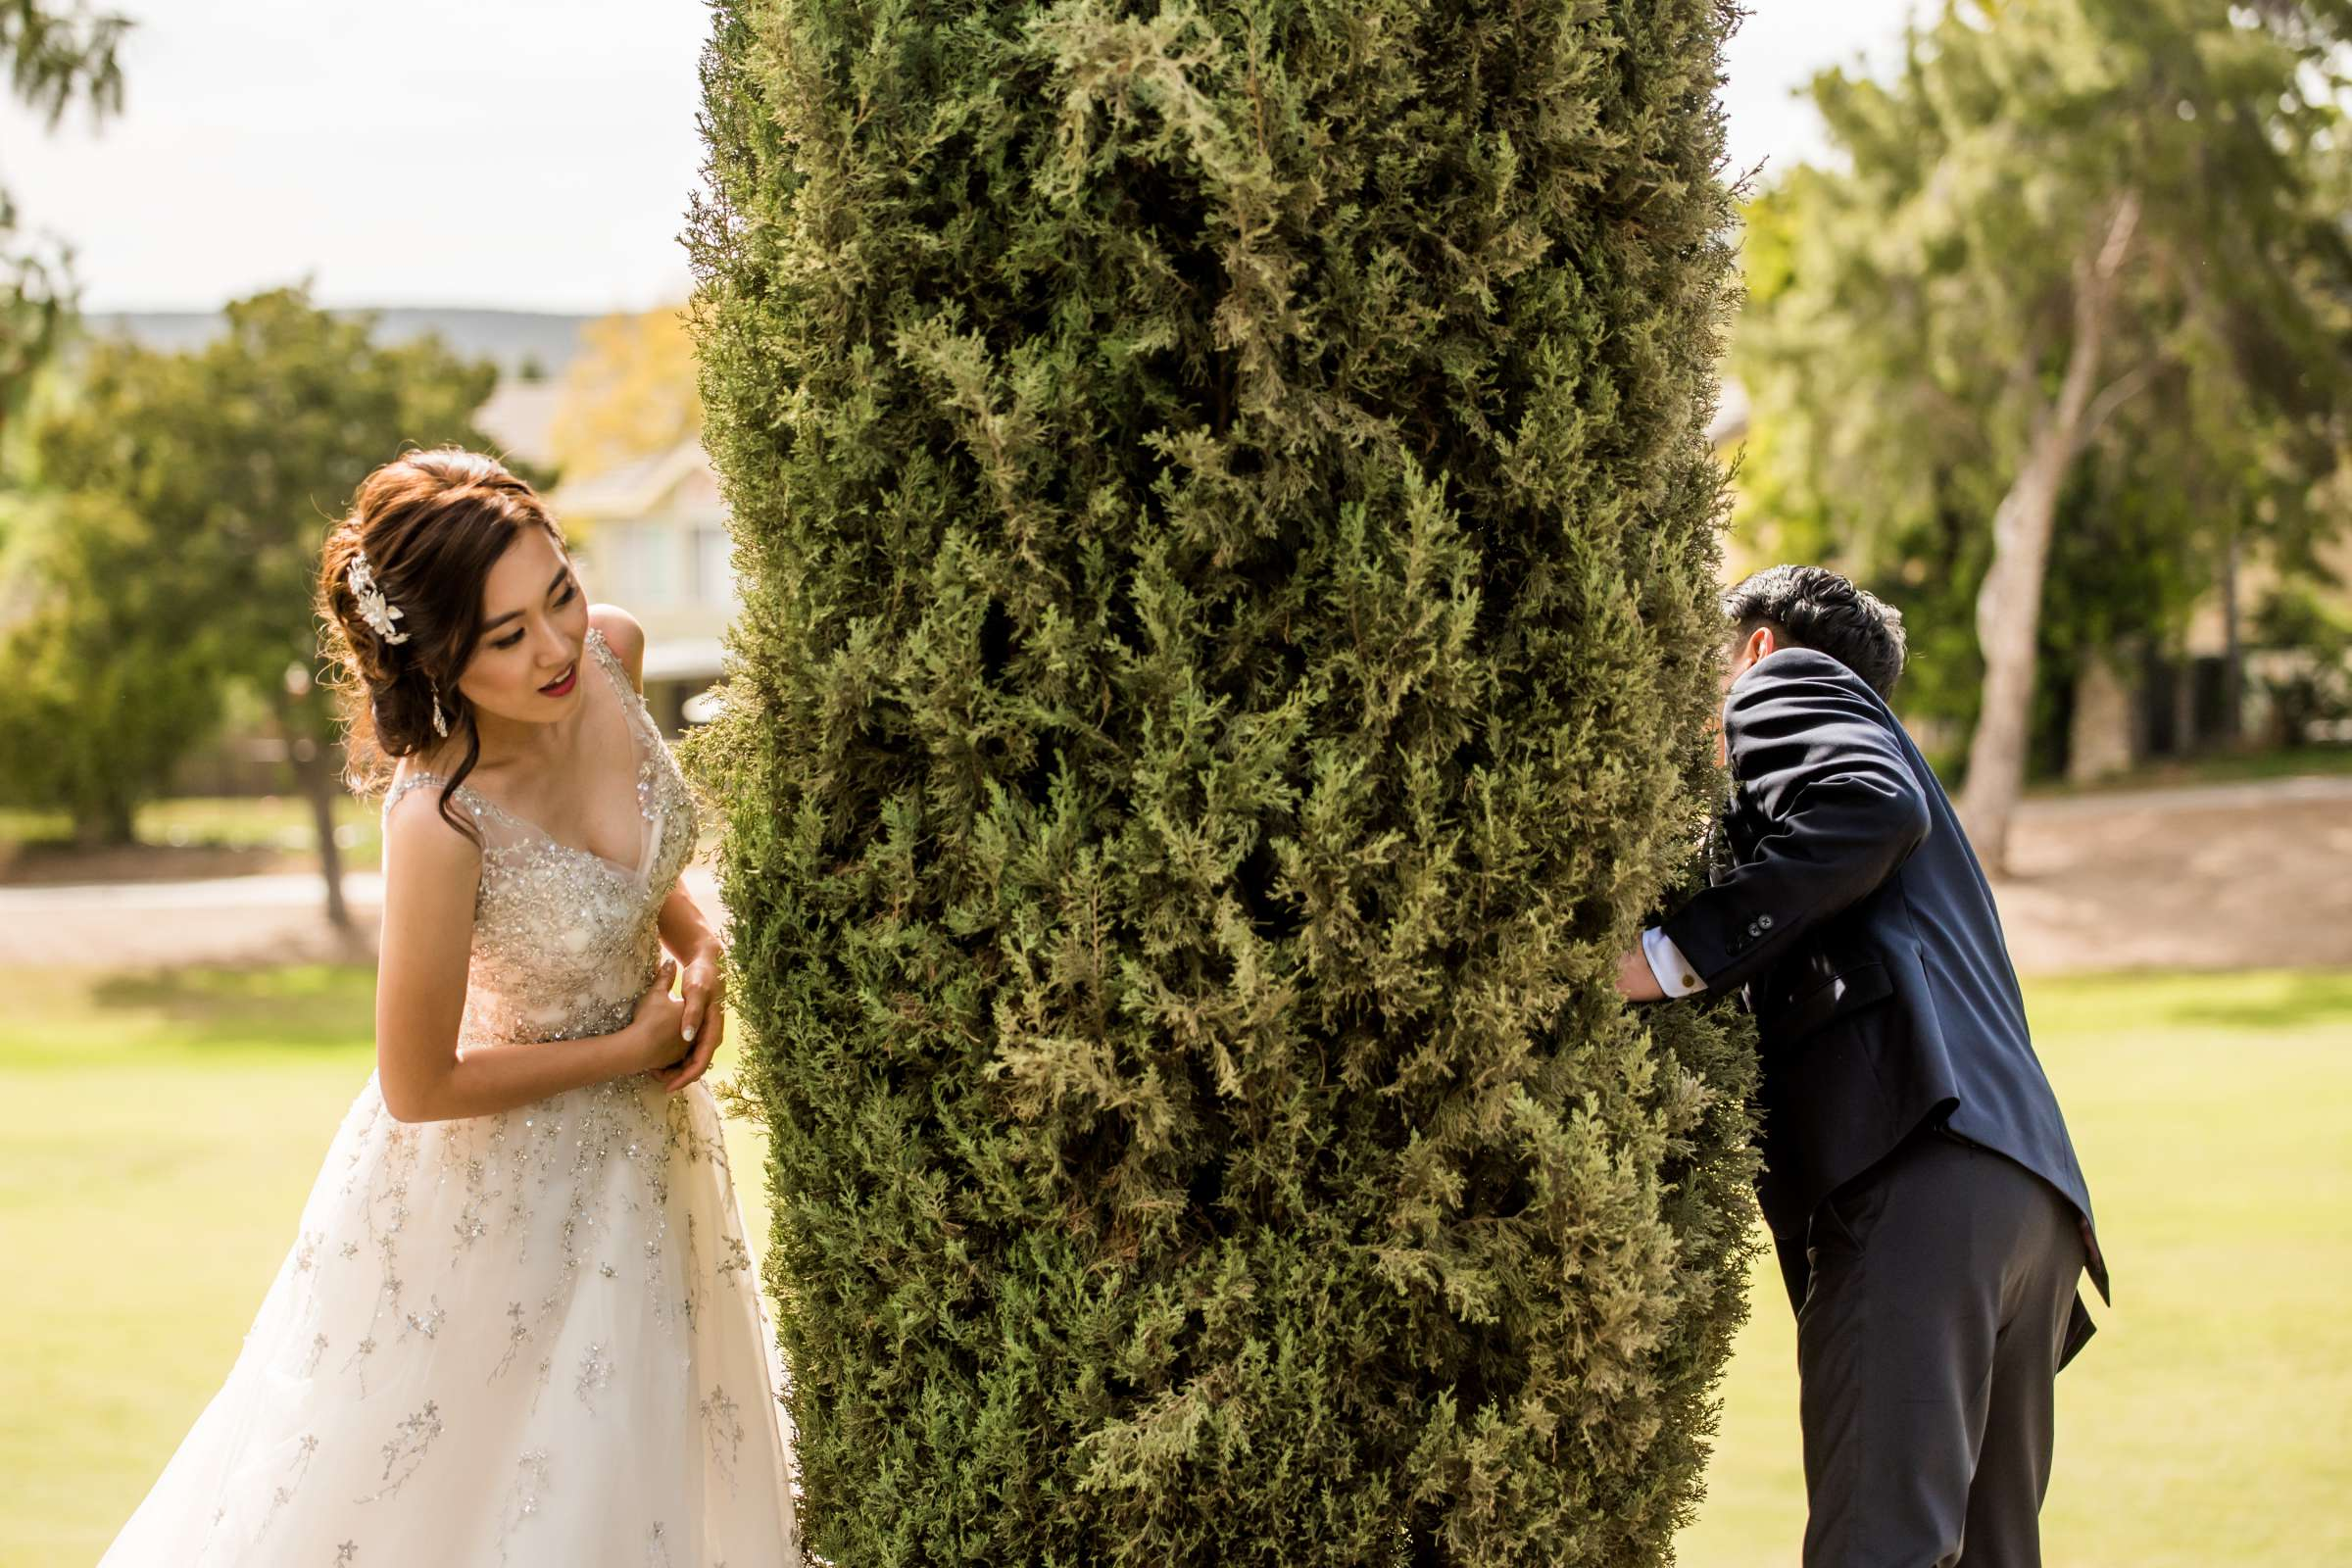 Funny moment at Carmel Mountain Ranch Wedding, Stella and Antonio Wedding Photo #458285 by True Photography